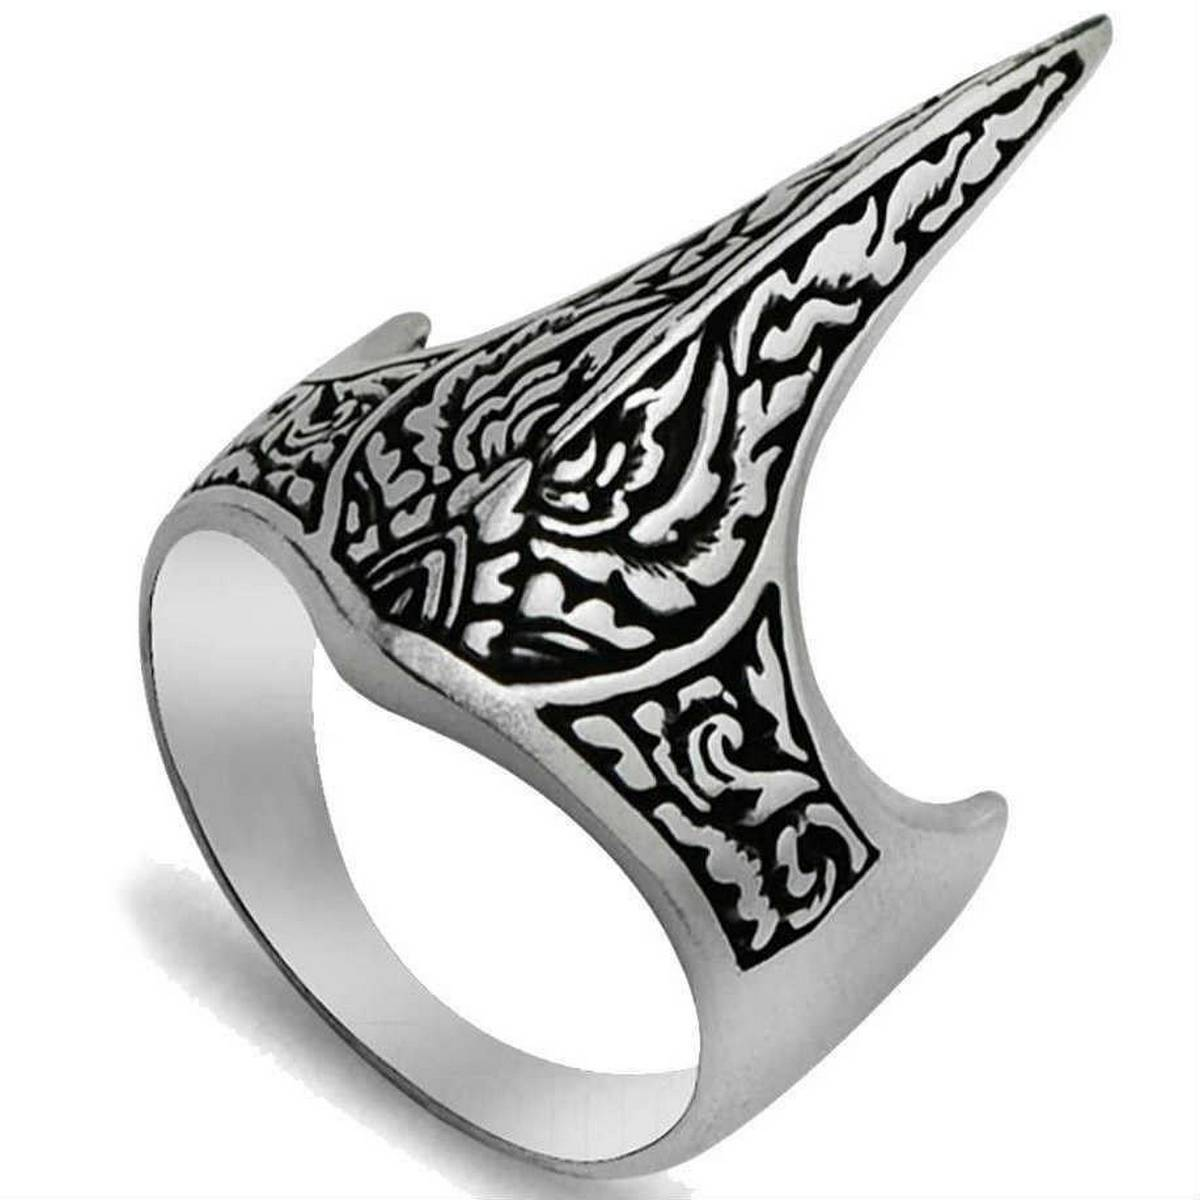 Ertugrul IYI Tribe Thumb Ring For Men  Kayi Clothing Ertugrul Bey Archery Thumb Ring  Kayi Clothing  Ertugrul Ring Kayi Dirilis IYI Kurulus Osman Thumb Silver Men IYI Dirilis Ertugrul Symbol Kayi Tribe Ring Handmade Men Jewelry Solid 925 Sterling Silver